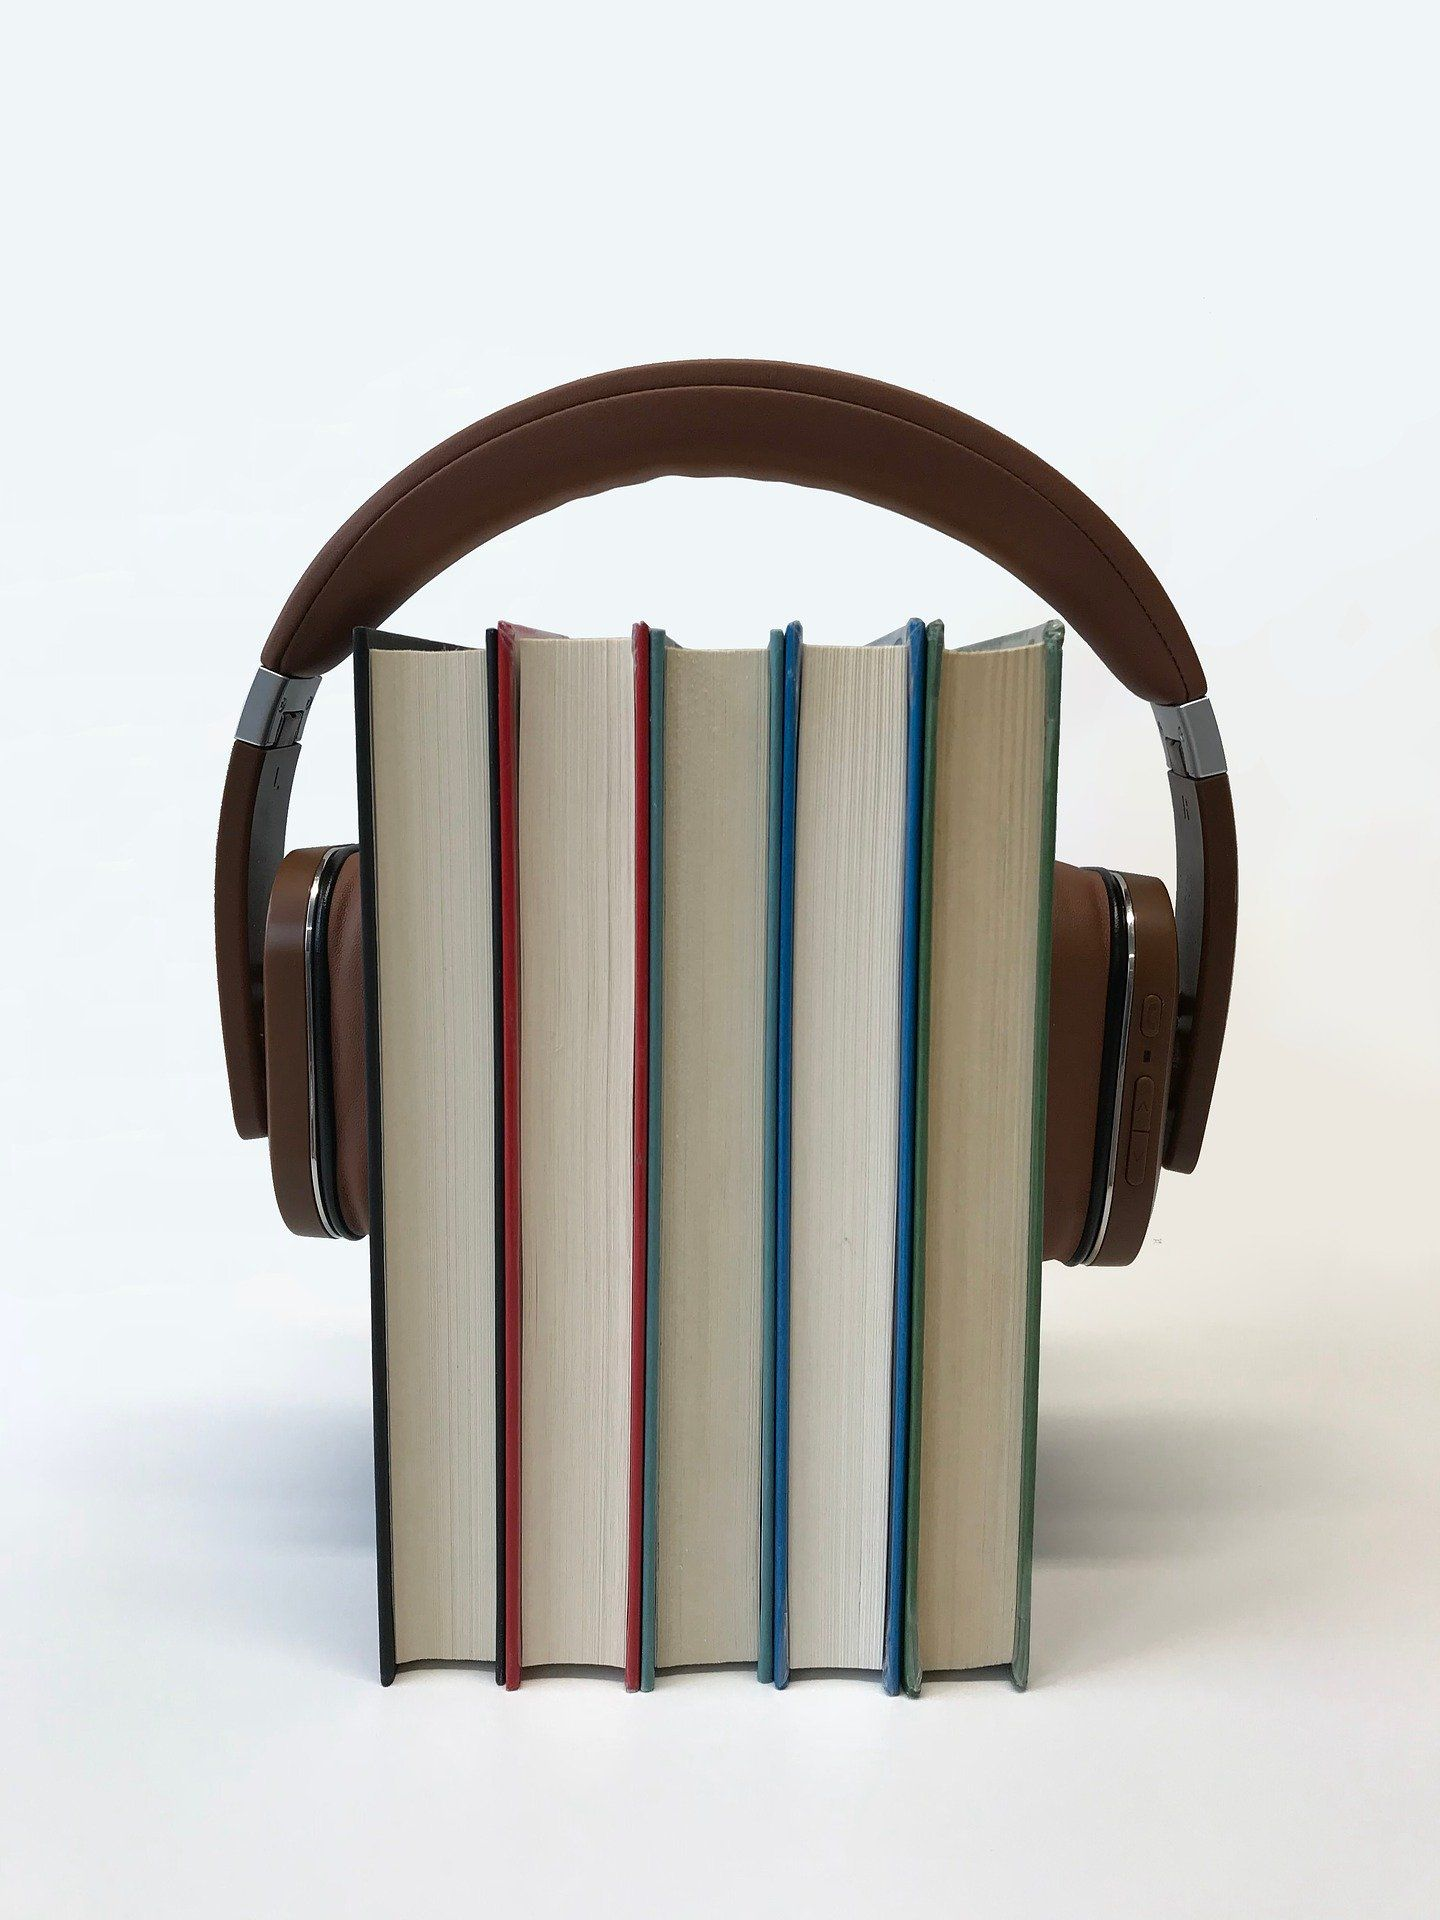 Books with a pair of headphones on them